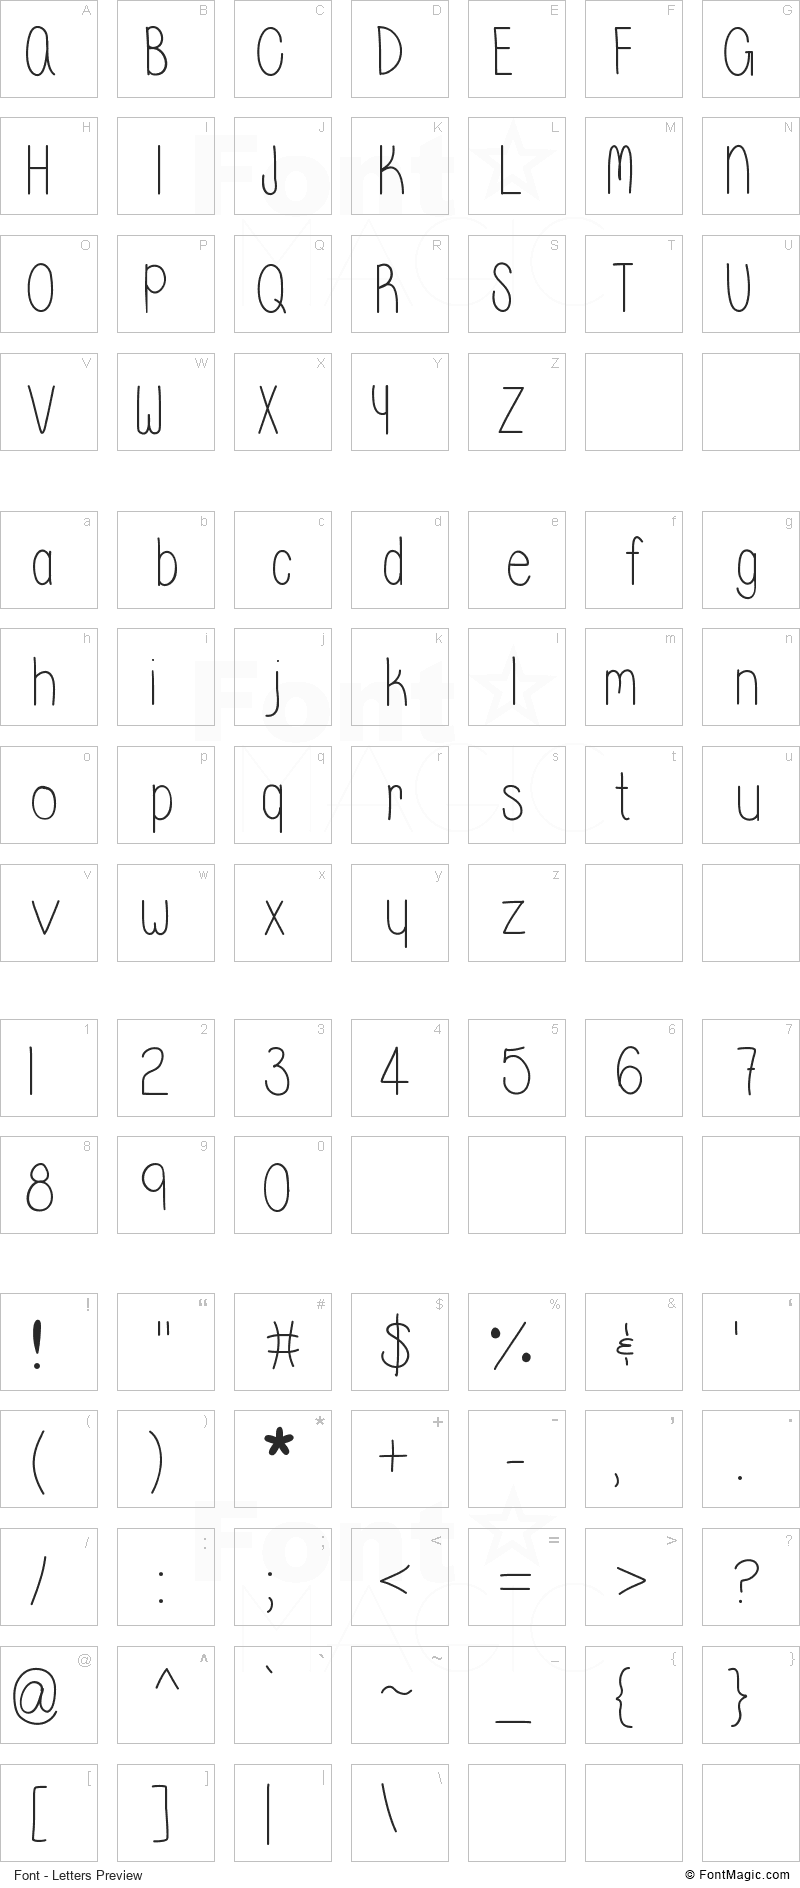 Whisper a Dream Font - All Latters Preview Chart